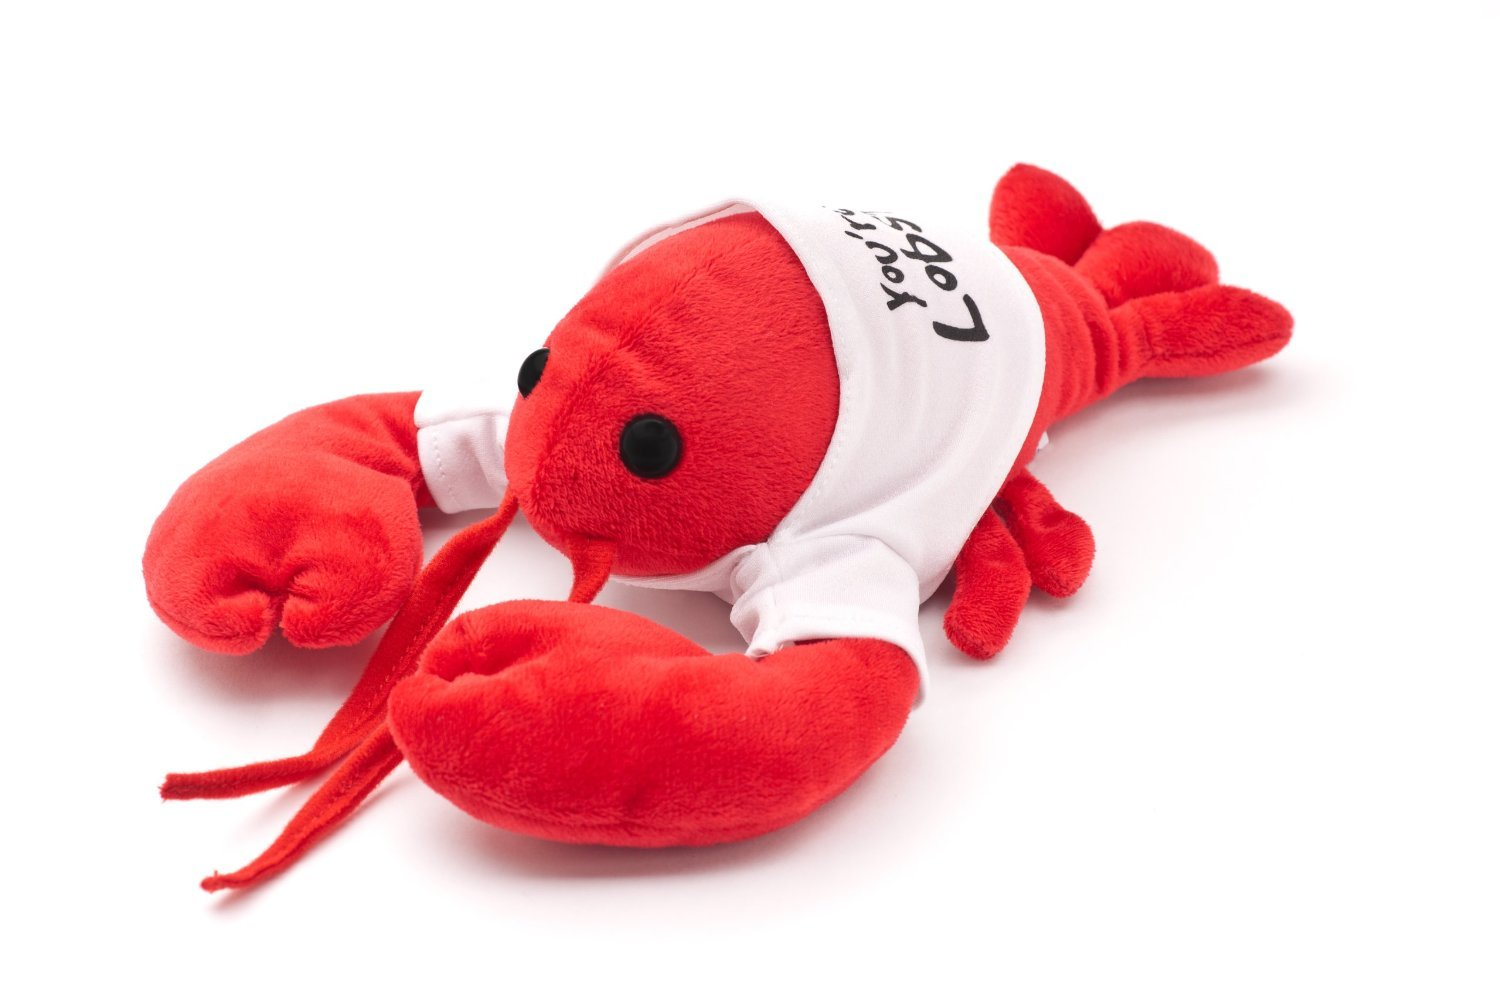 Cool TV Props Friends You're My Lobster Plush Friends Lobster Stuffed Animal Plush - Ross Geller Rachel Green Lobster Stuffed Animal in Cute White T-Shirt - 8'' (20cm) Head to Tail, 6'' (15cm) Claw to